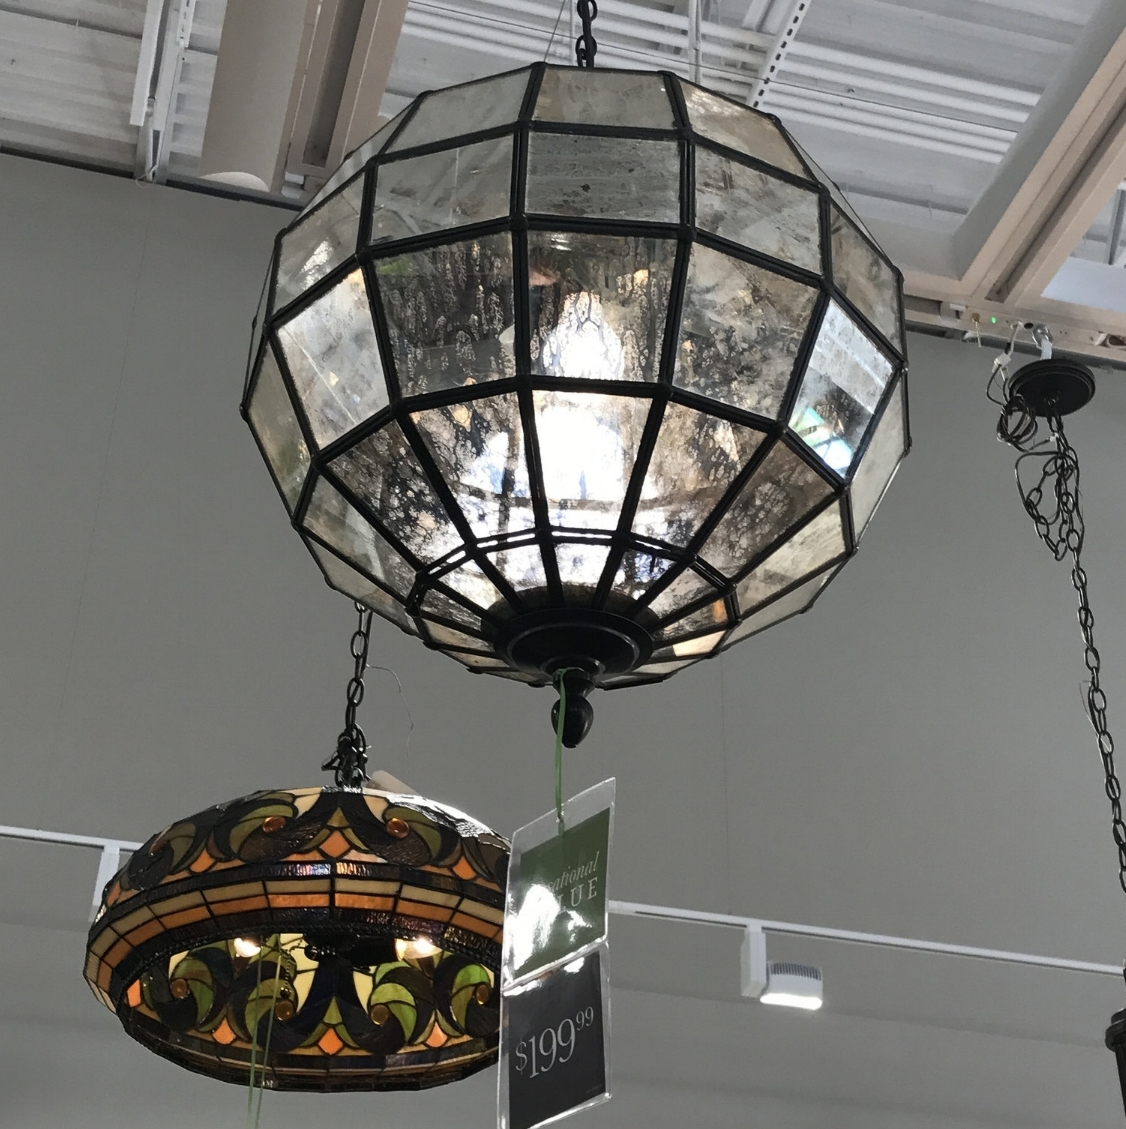 This gorgeous mercury glass pendant is only $199 and is the perfect combination of rustic with a touch of glam to update any space!